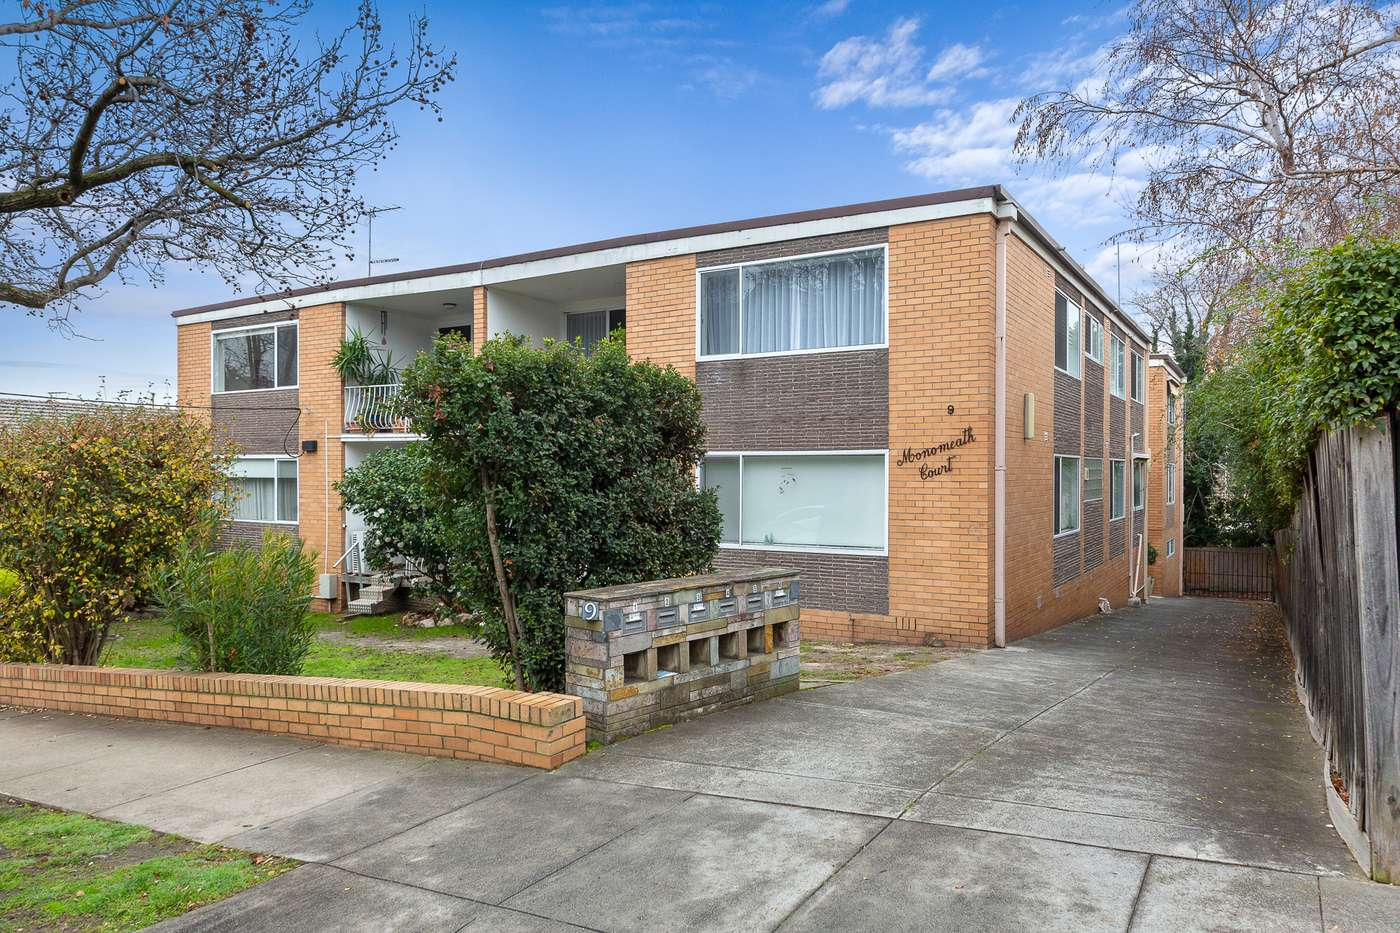 Main view of Homely apartment listing, 2/9 Monomeath Avenue, Toorak, VIC 3142